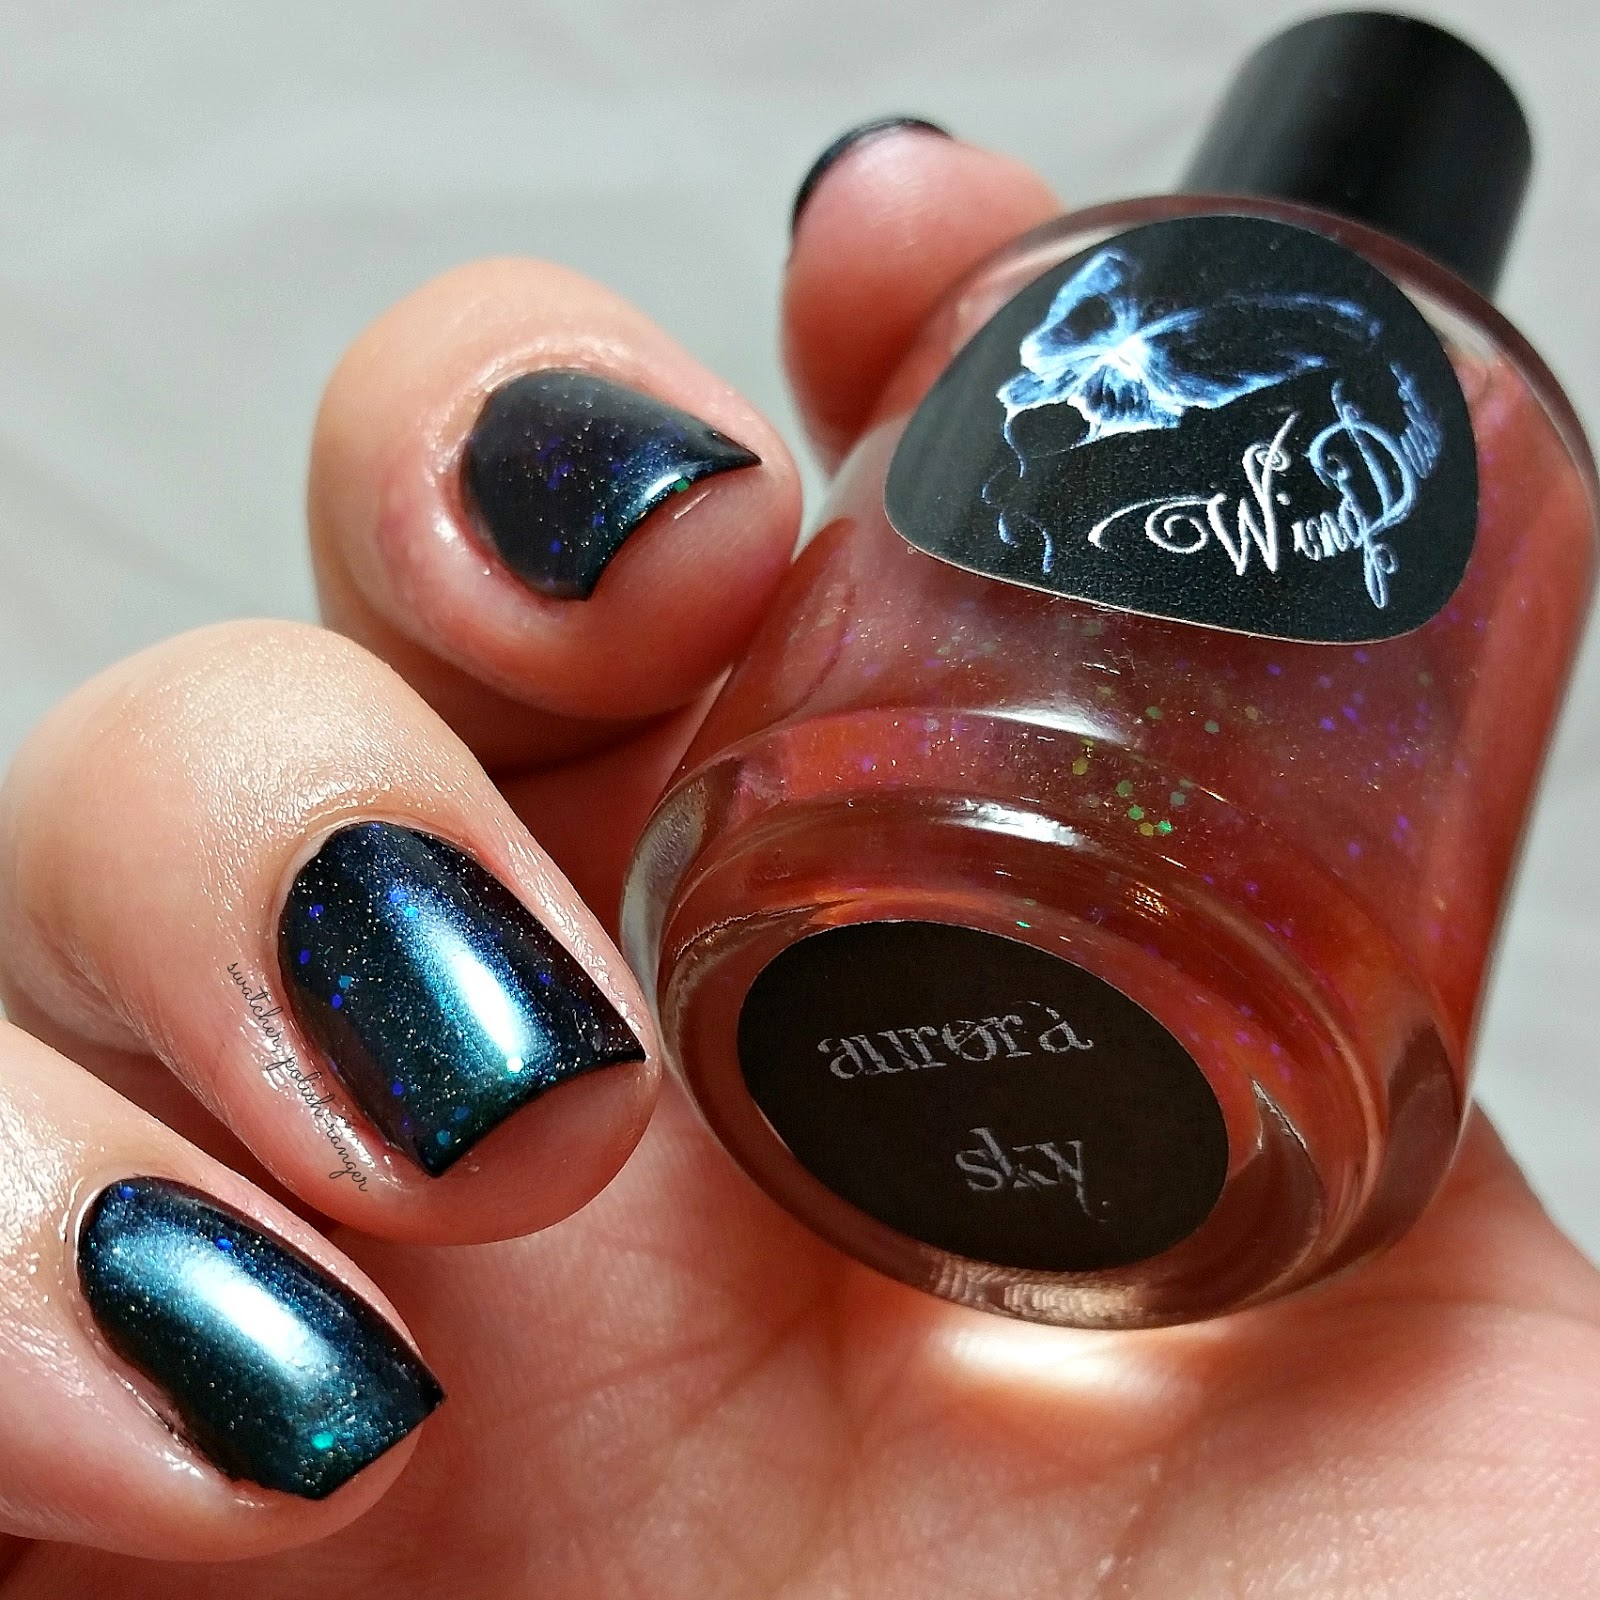 swatcher, polish-ranger | Wingdust Collections Aurora Sky swatch